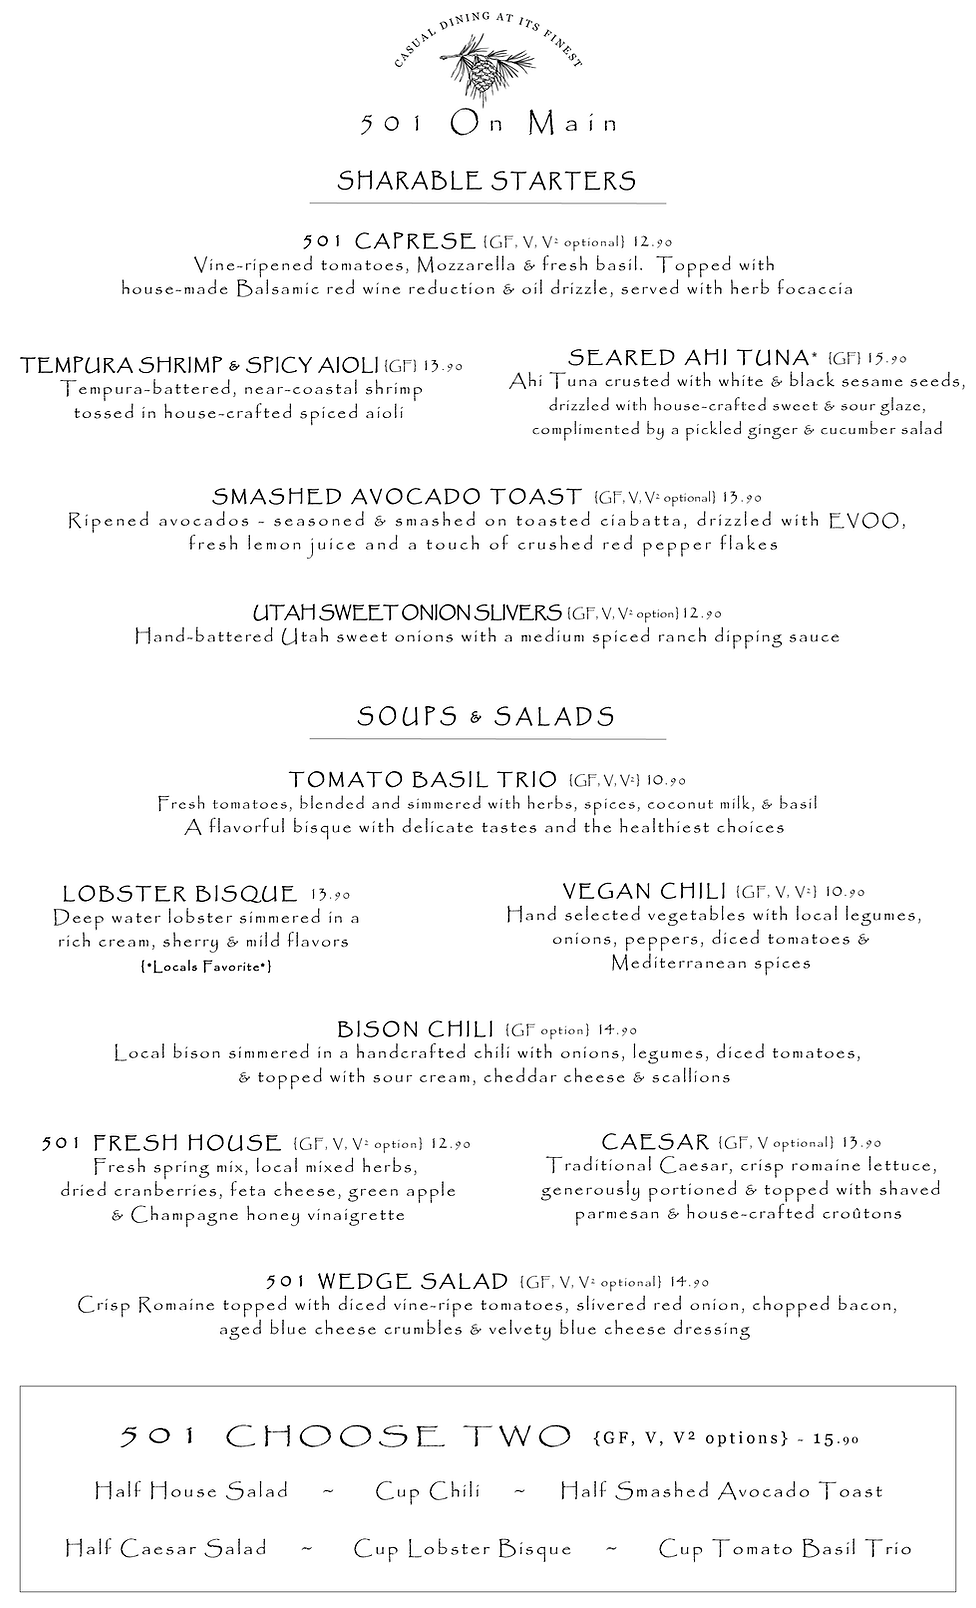 6.0 Lunch Summer Menu 7-2-2020 FOR PRINT